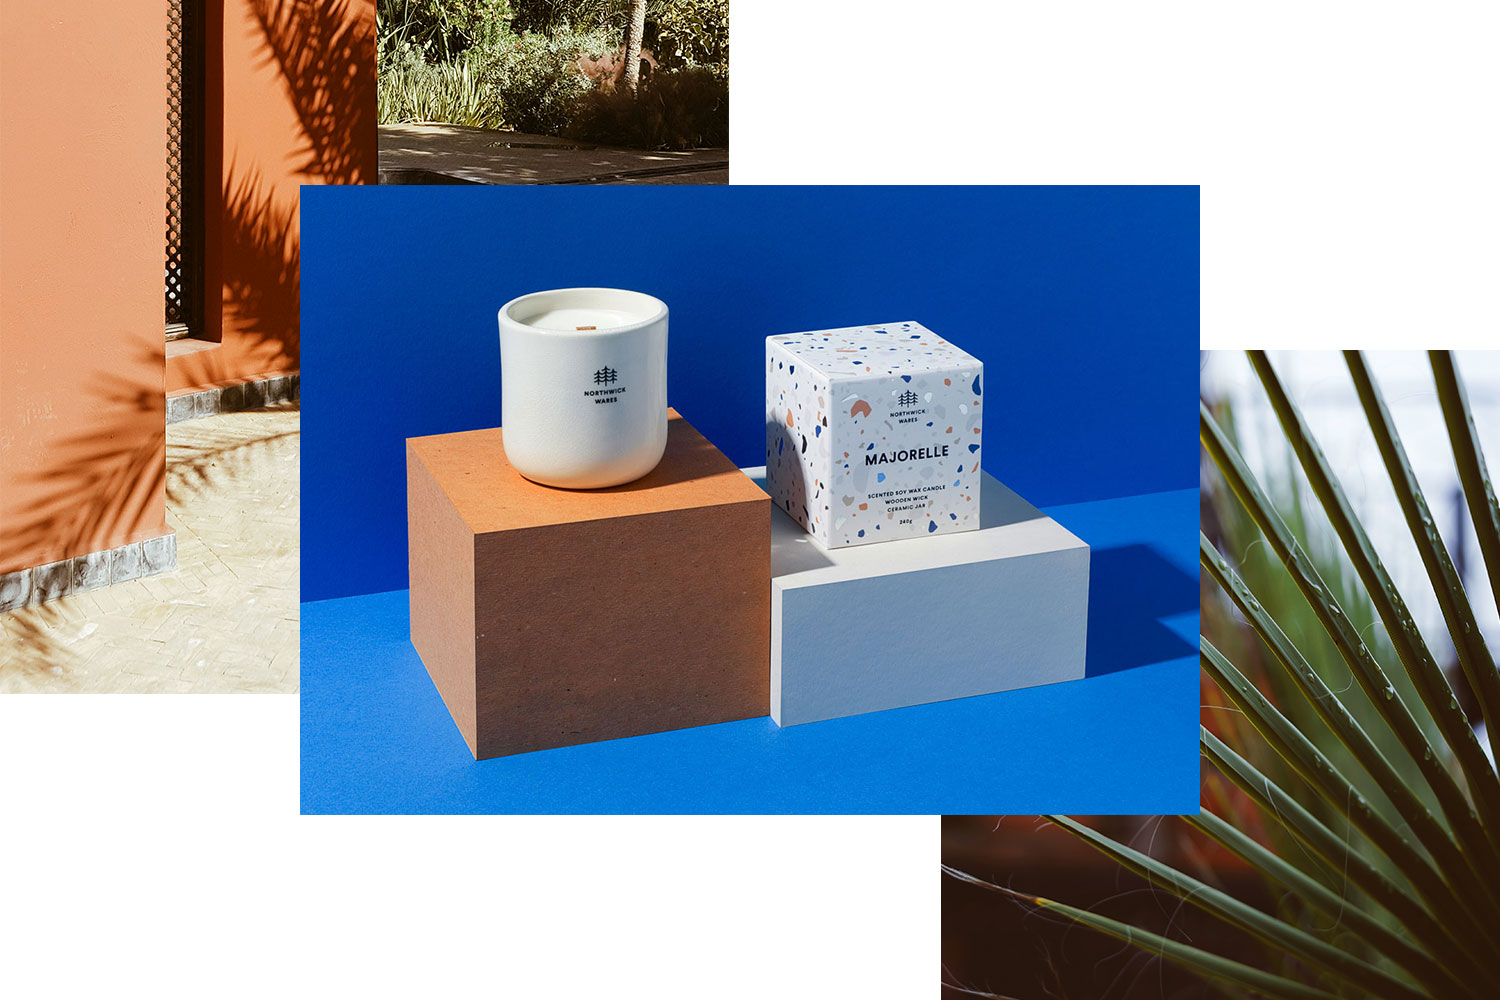 Majorelle - Inspired by the Jardin Majorelle in Marrakech, our Majorelle candle transports you to the shady Moroccan garden lanes of what was once Yves Saint Laurent's holiday home.